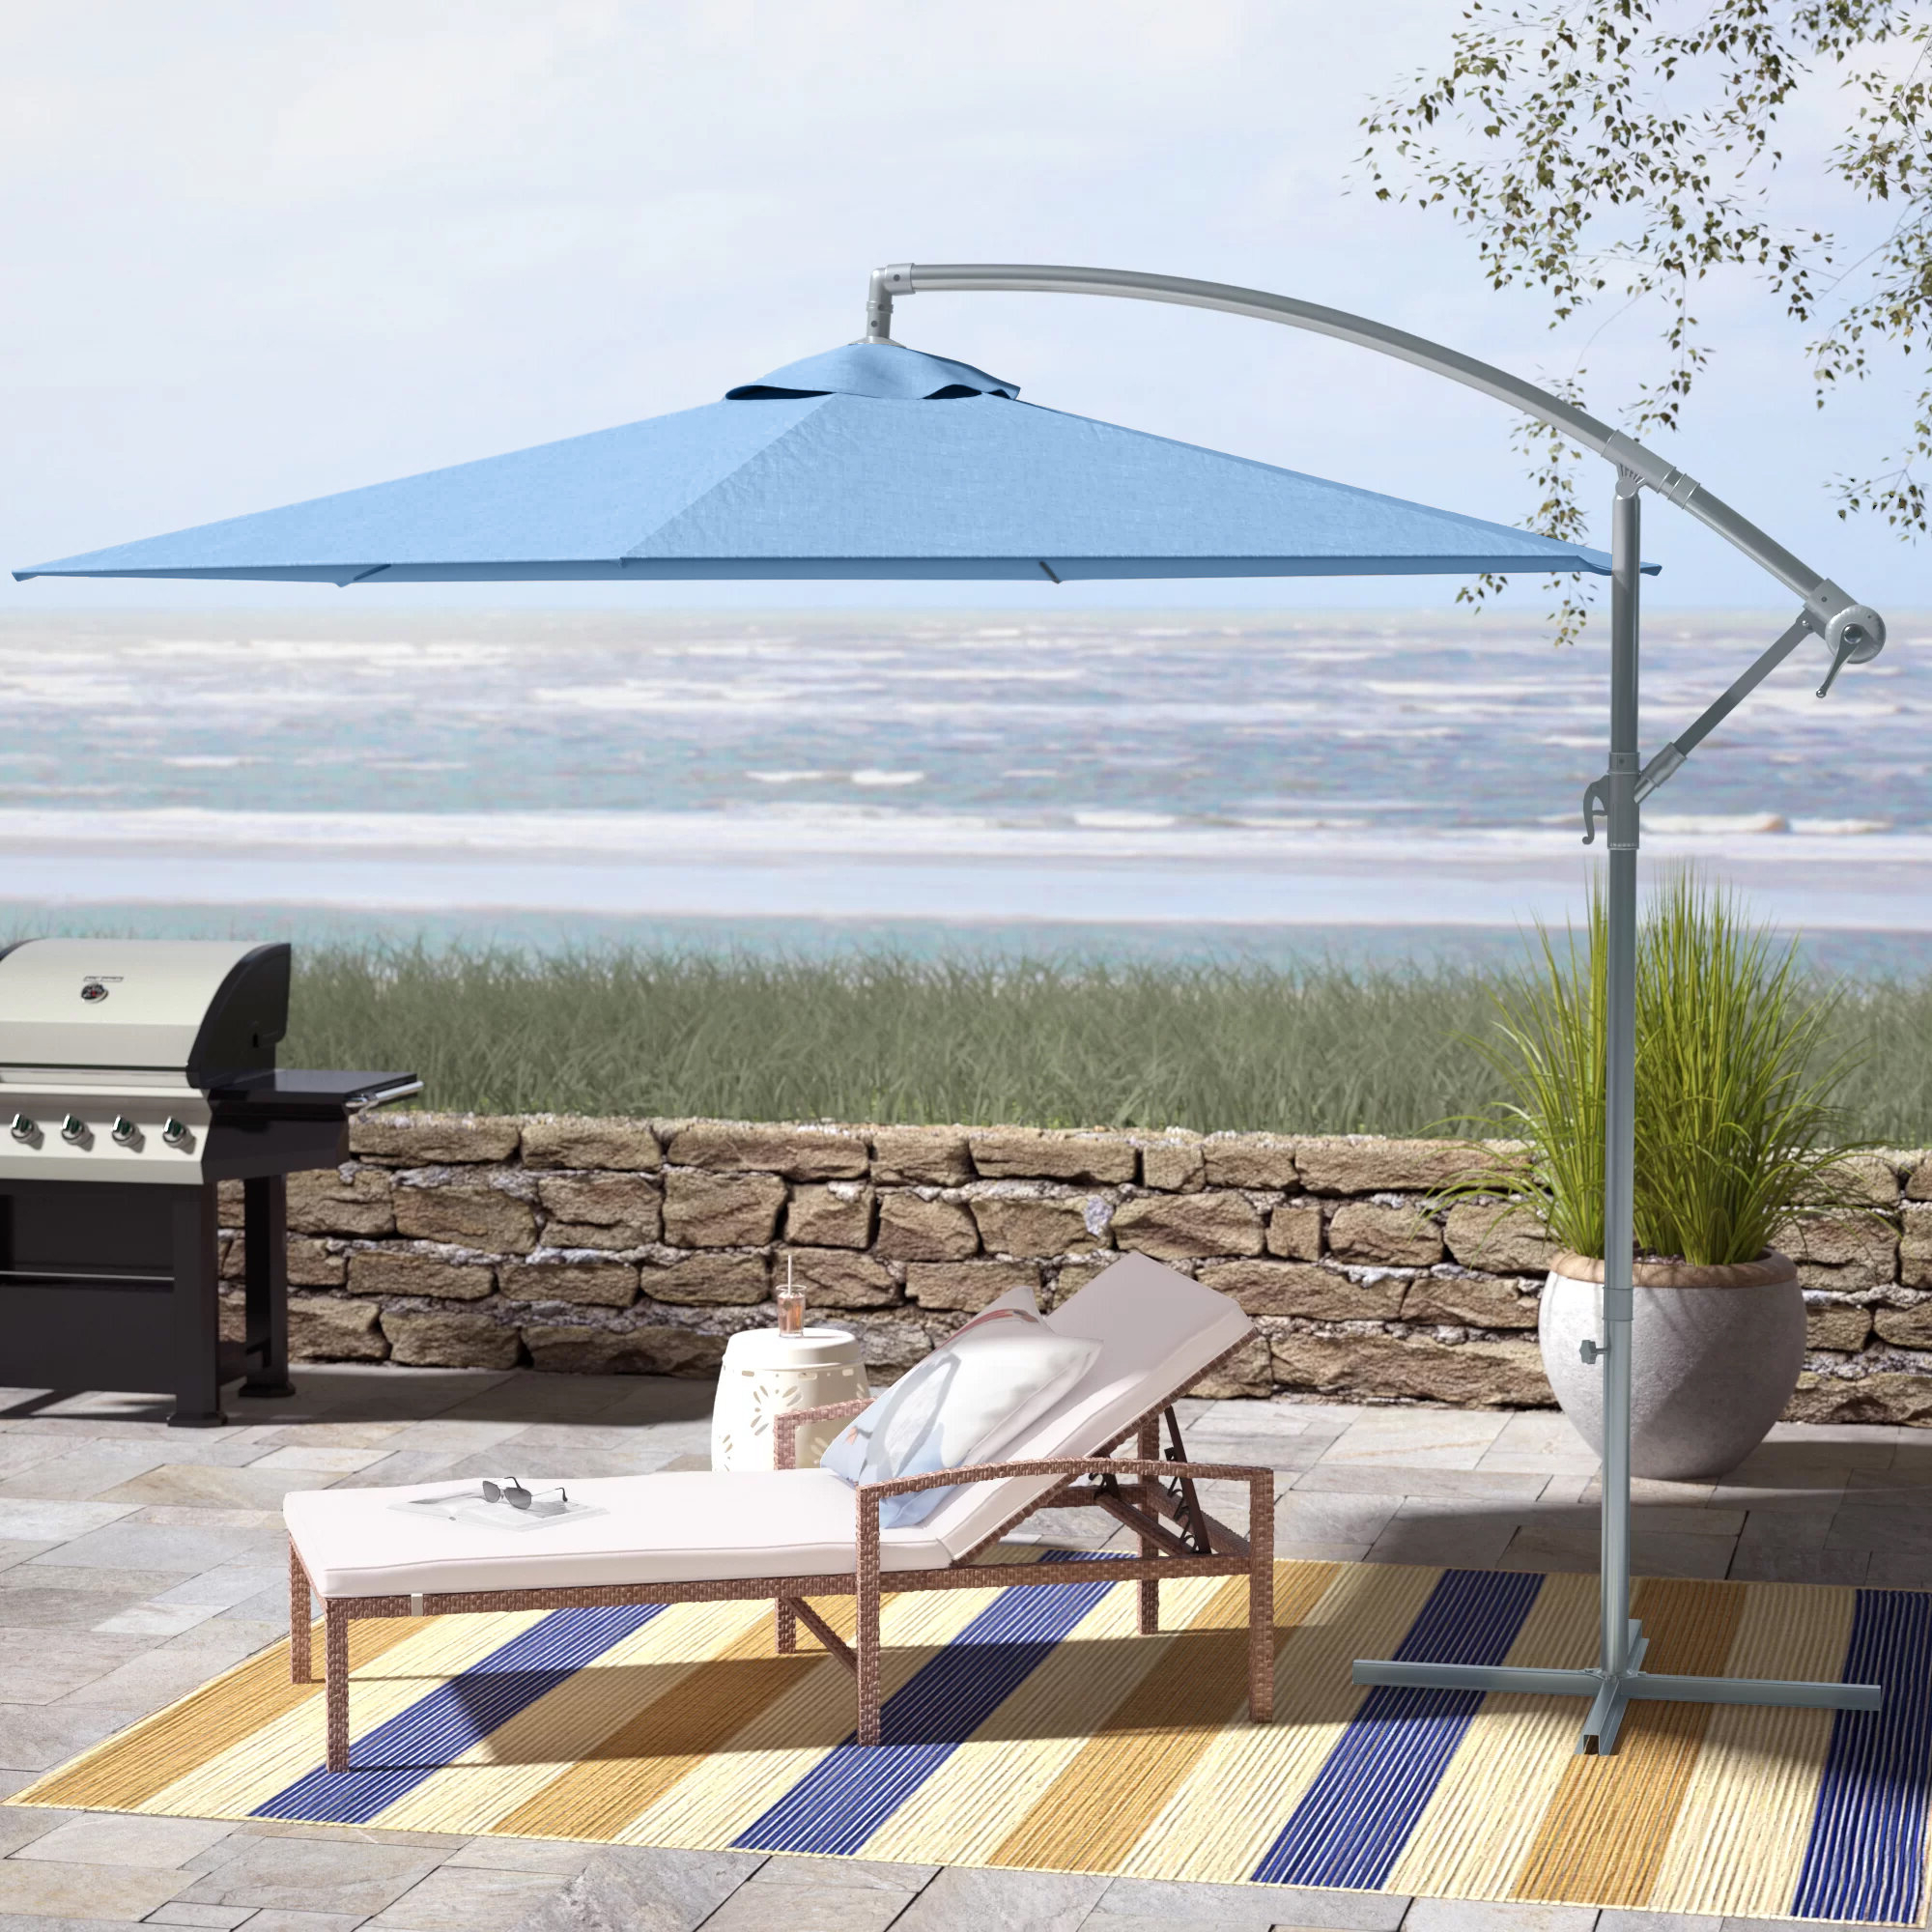 Muhammad Fullerton 10' Cantilever Umbrella Regarding Widely Used Vassalboro Cantilever Umbrellas (View 13 of 20)